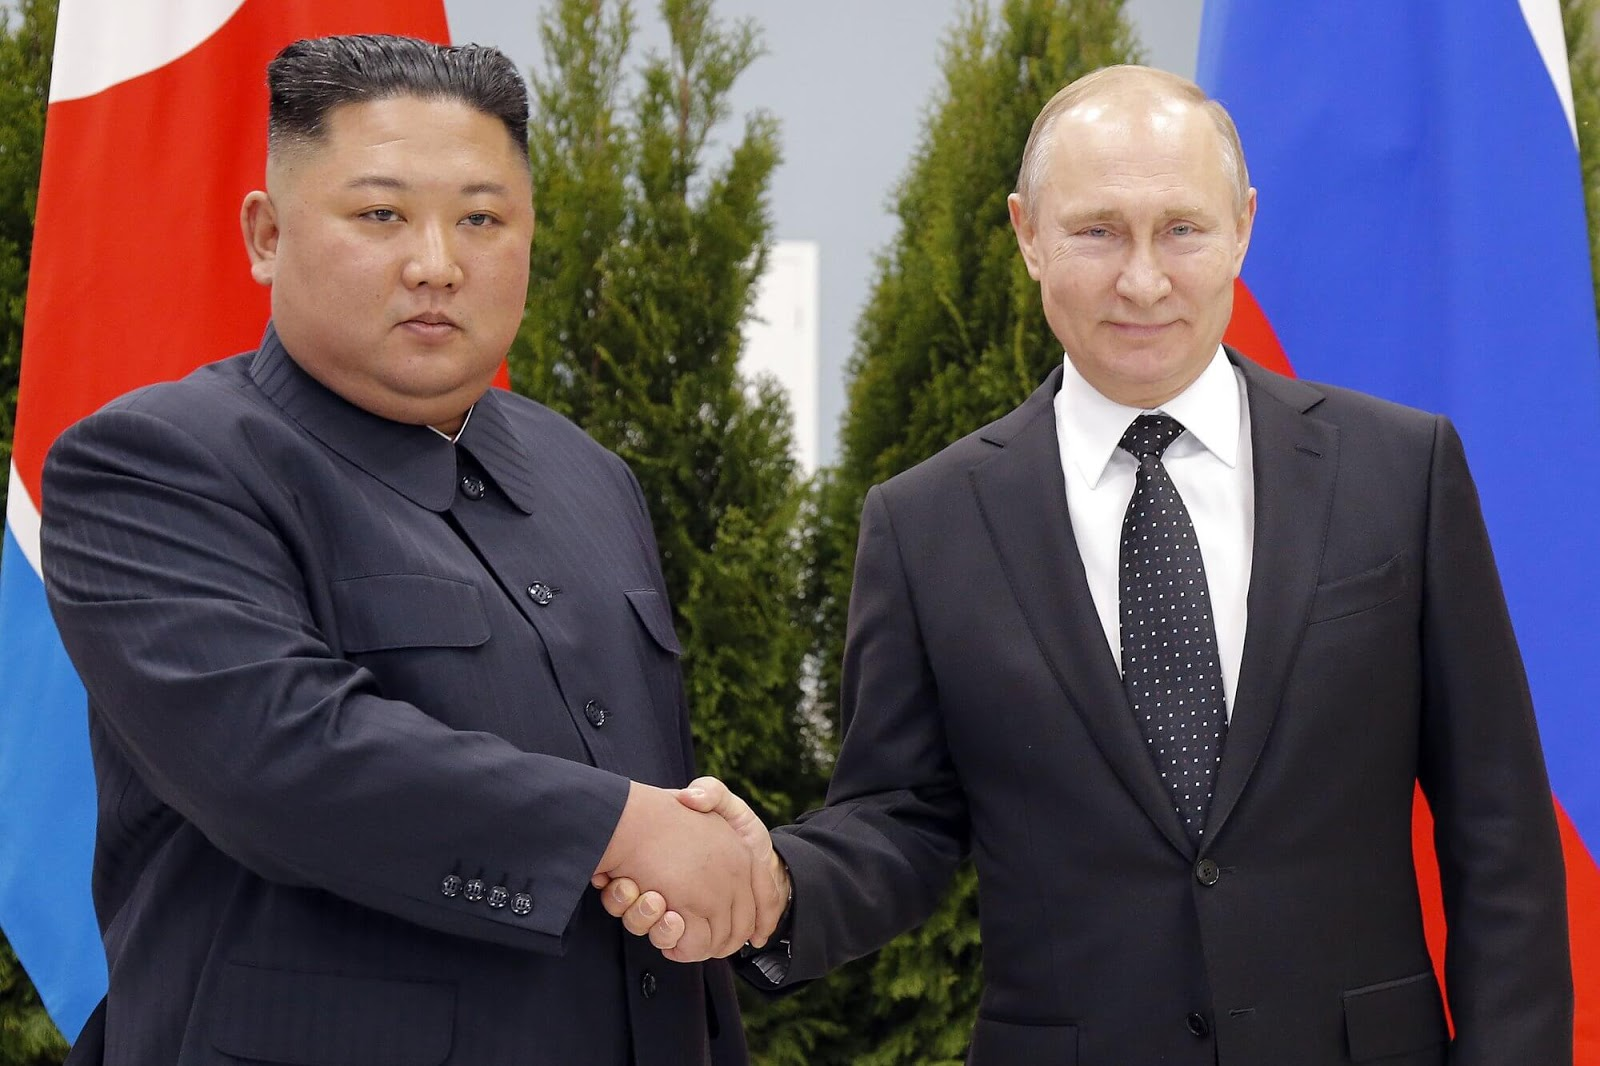 Putin hosts Kim for talks on North Korean nuclear standoff